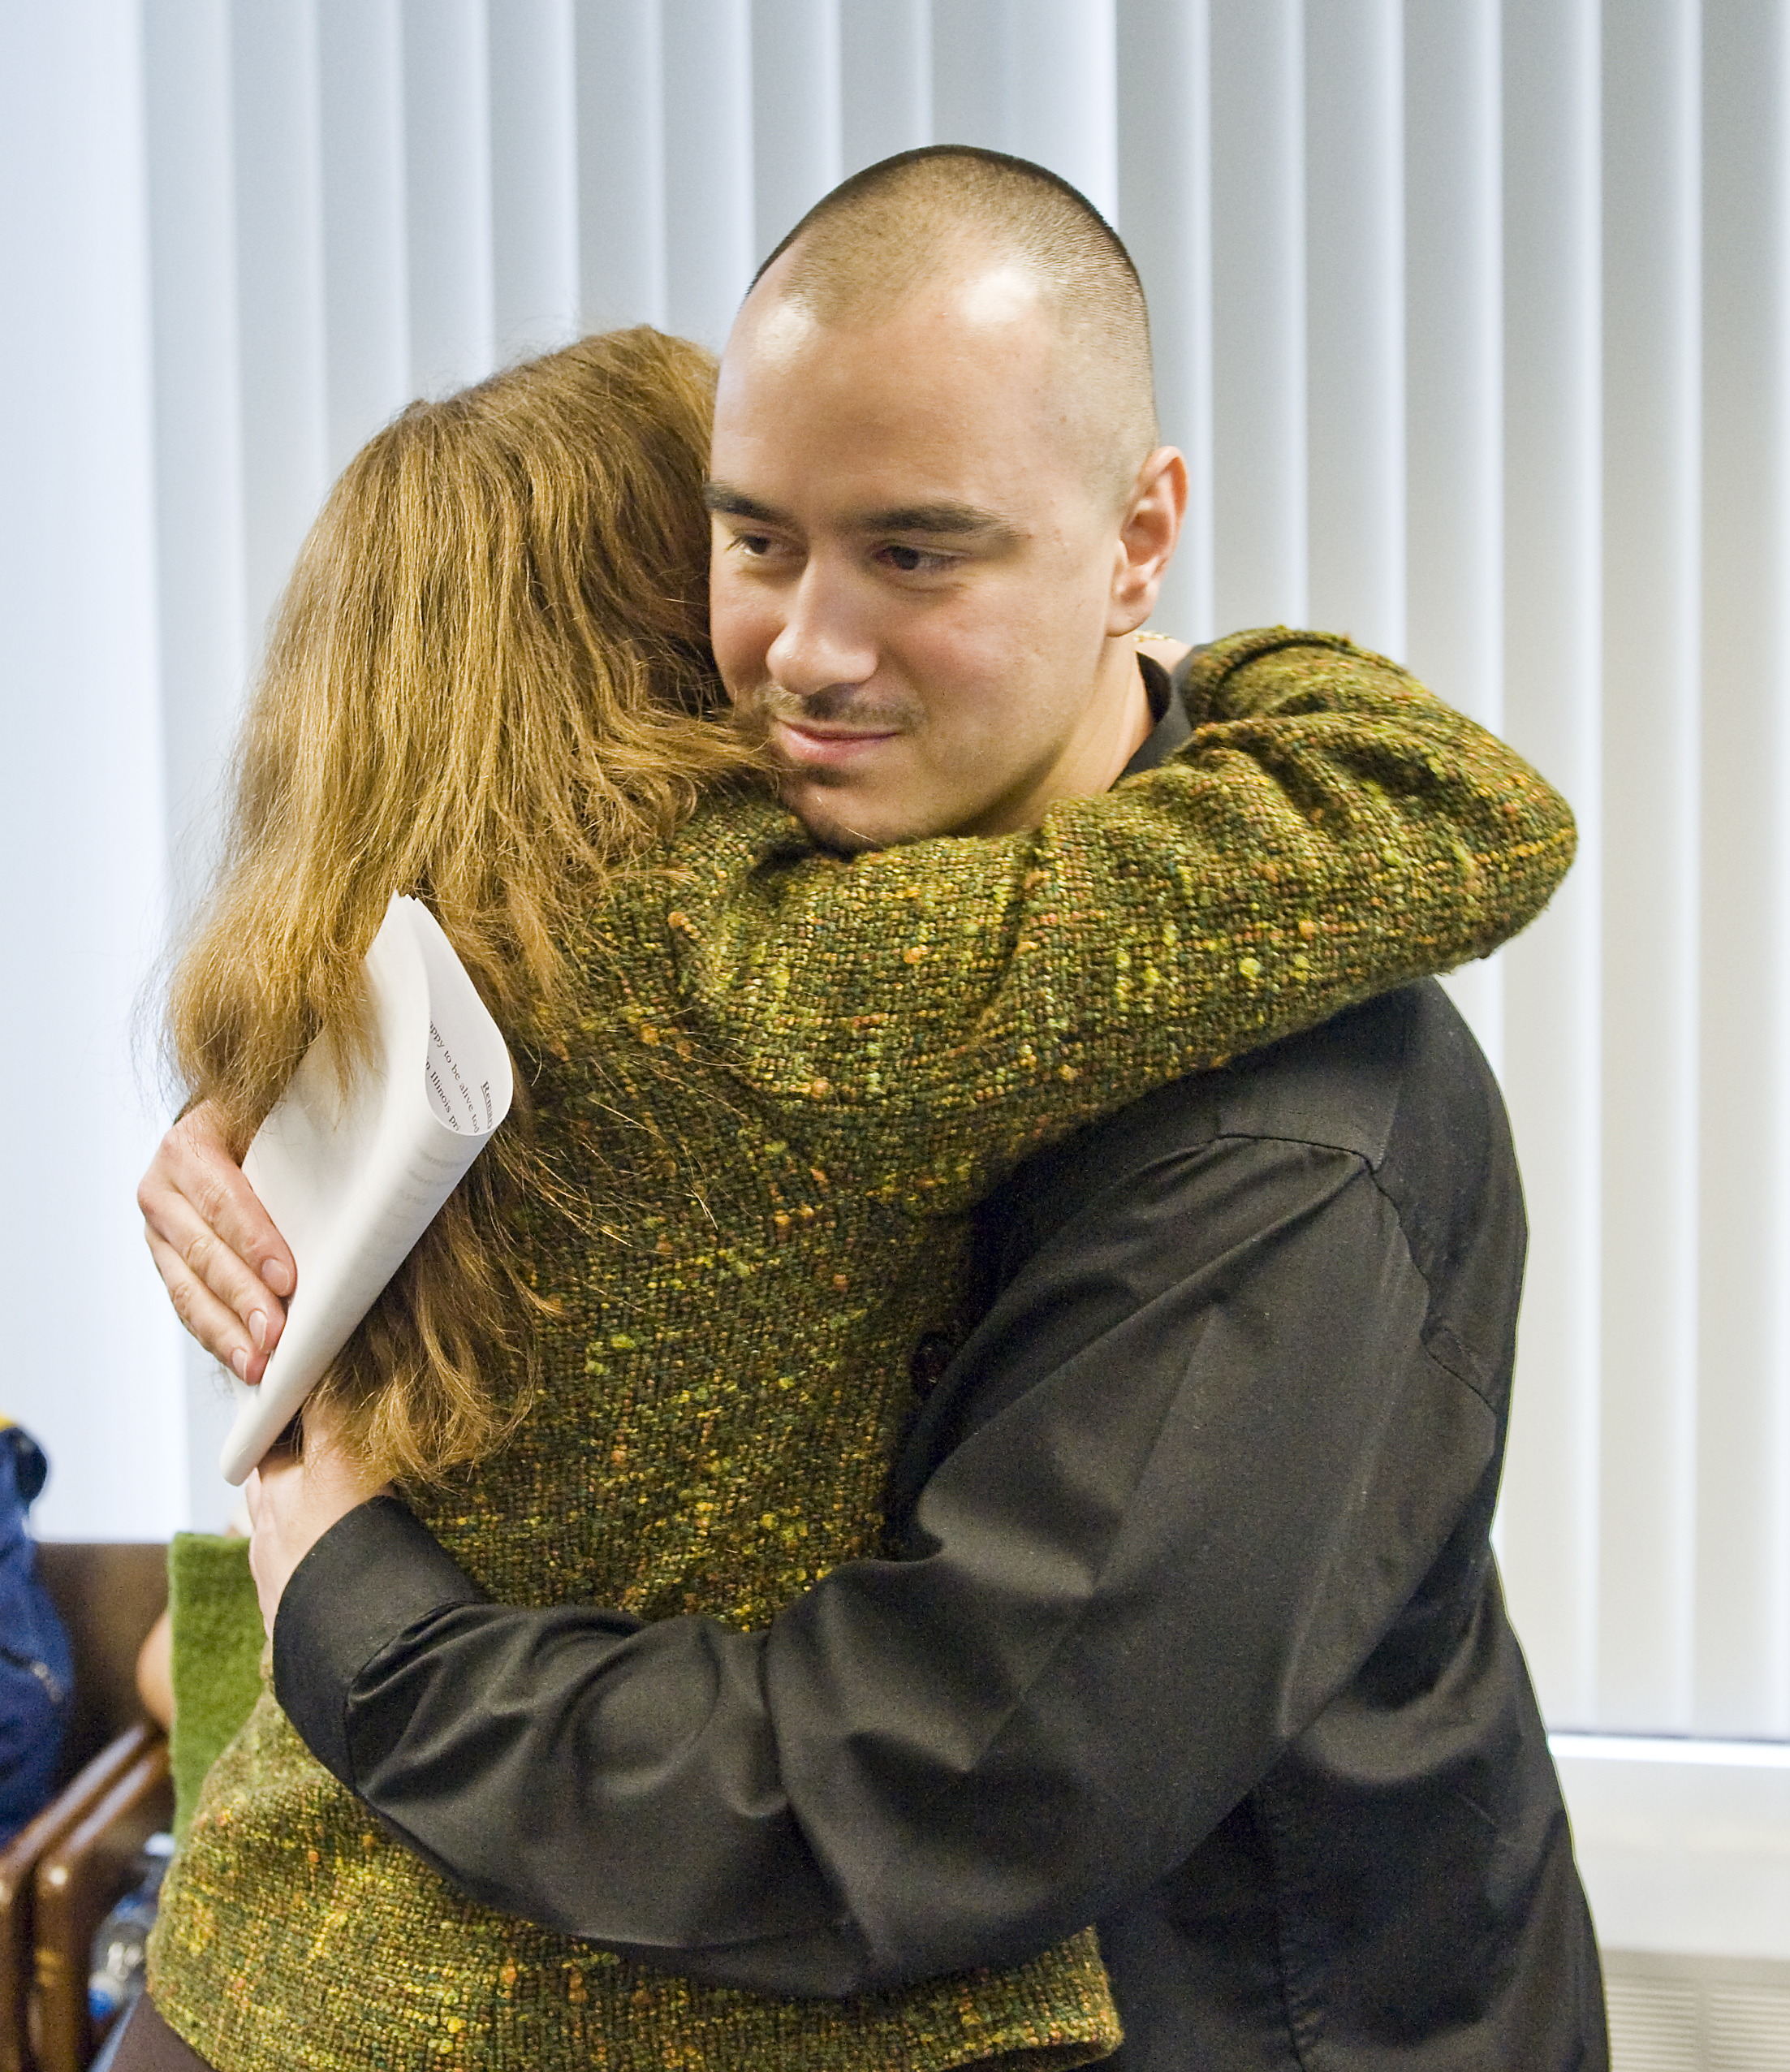 """Thaddeus """"T.J."""" Jimenez celebrates his freedom in 2009 after winning release for a killing he said he didn't commit."""